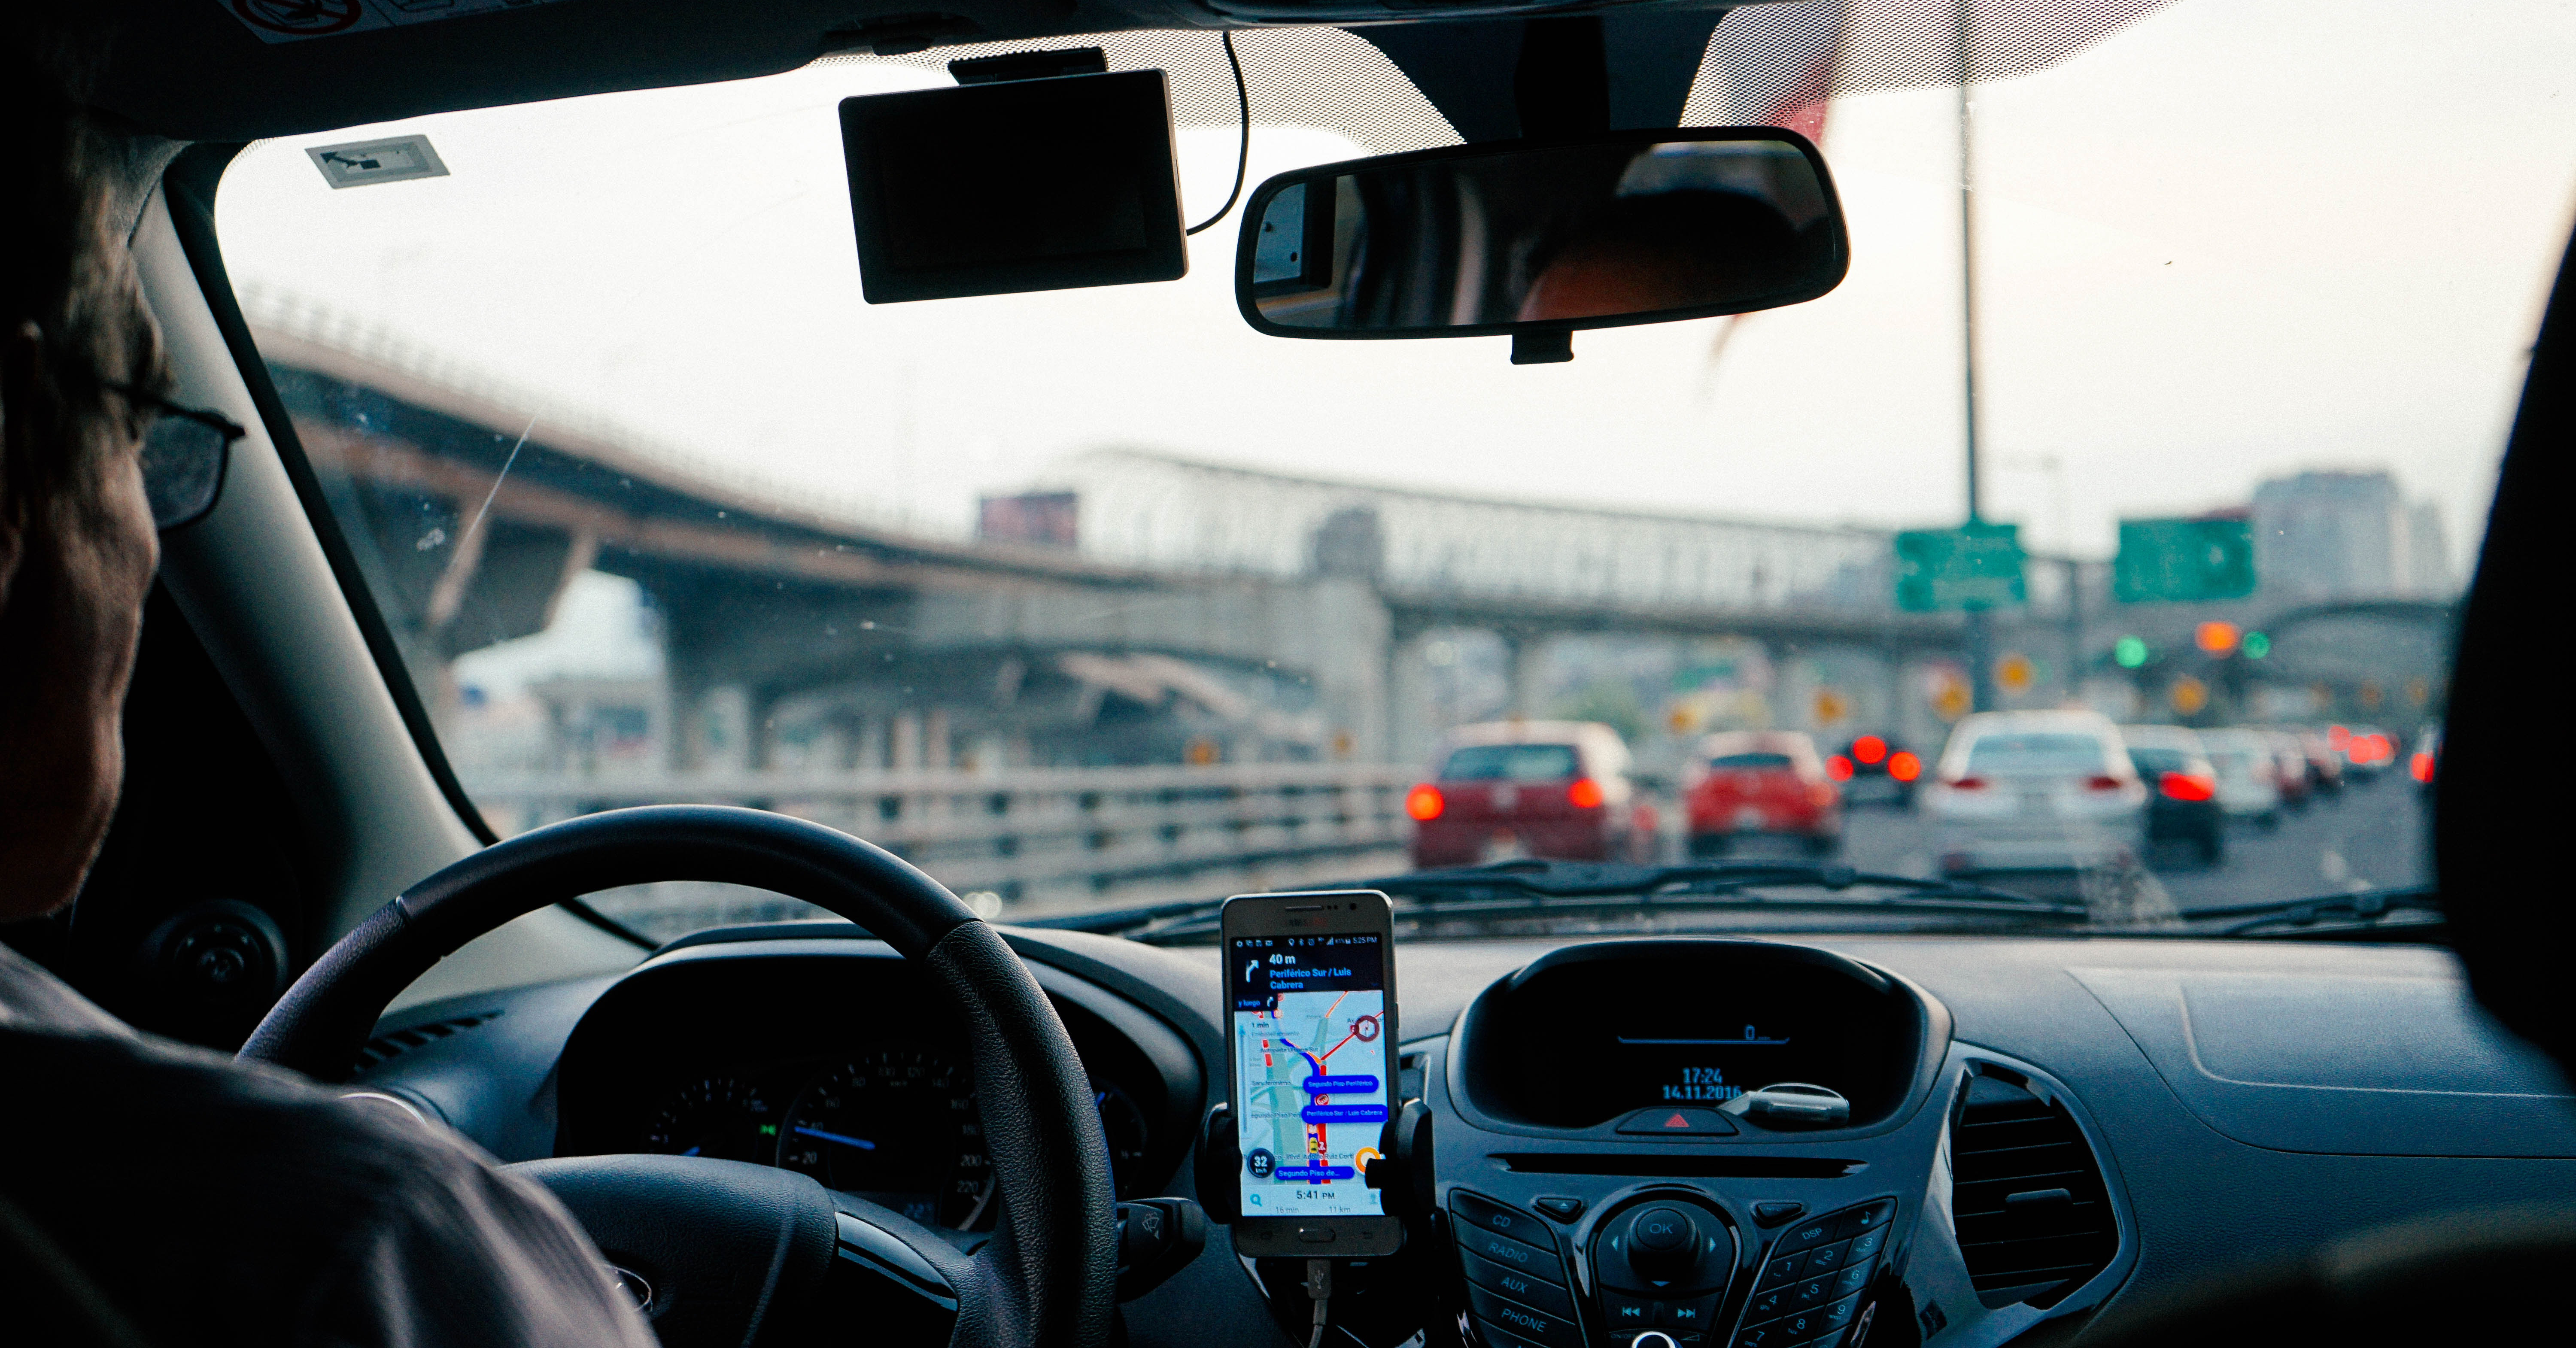 The back of a man in the driver's seat of a car, using a navigation system on his phone